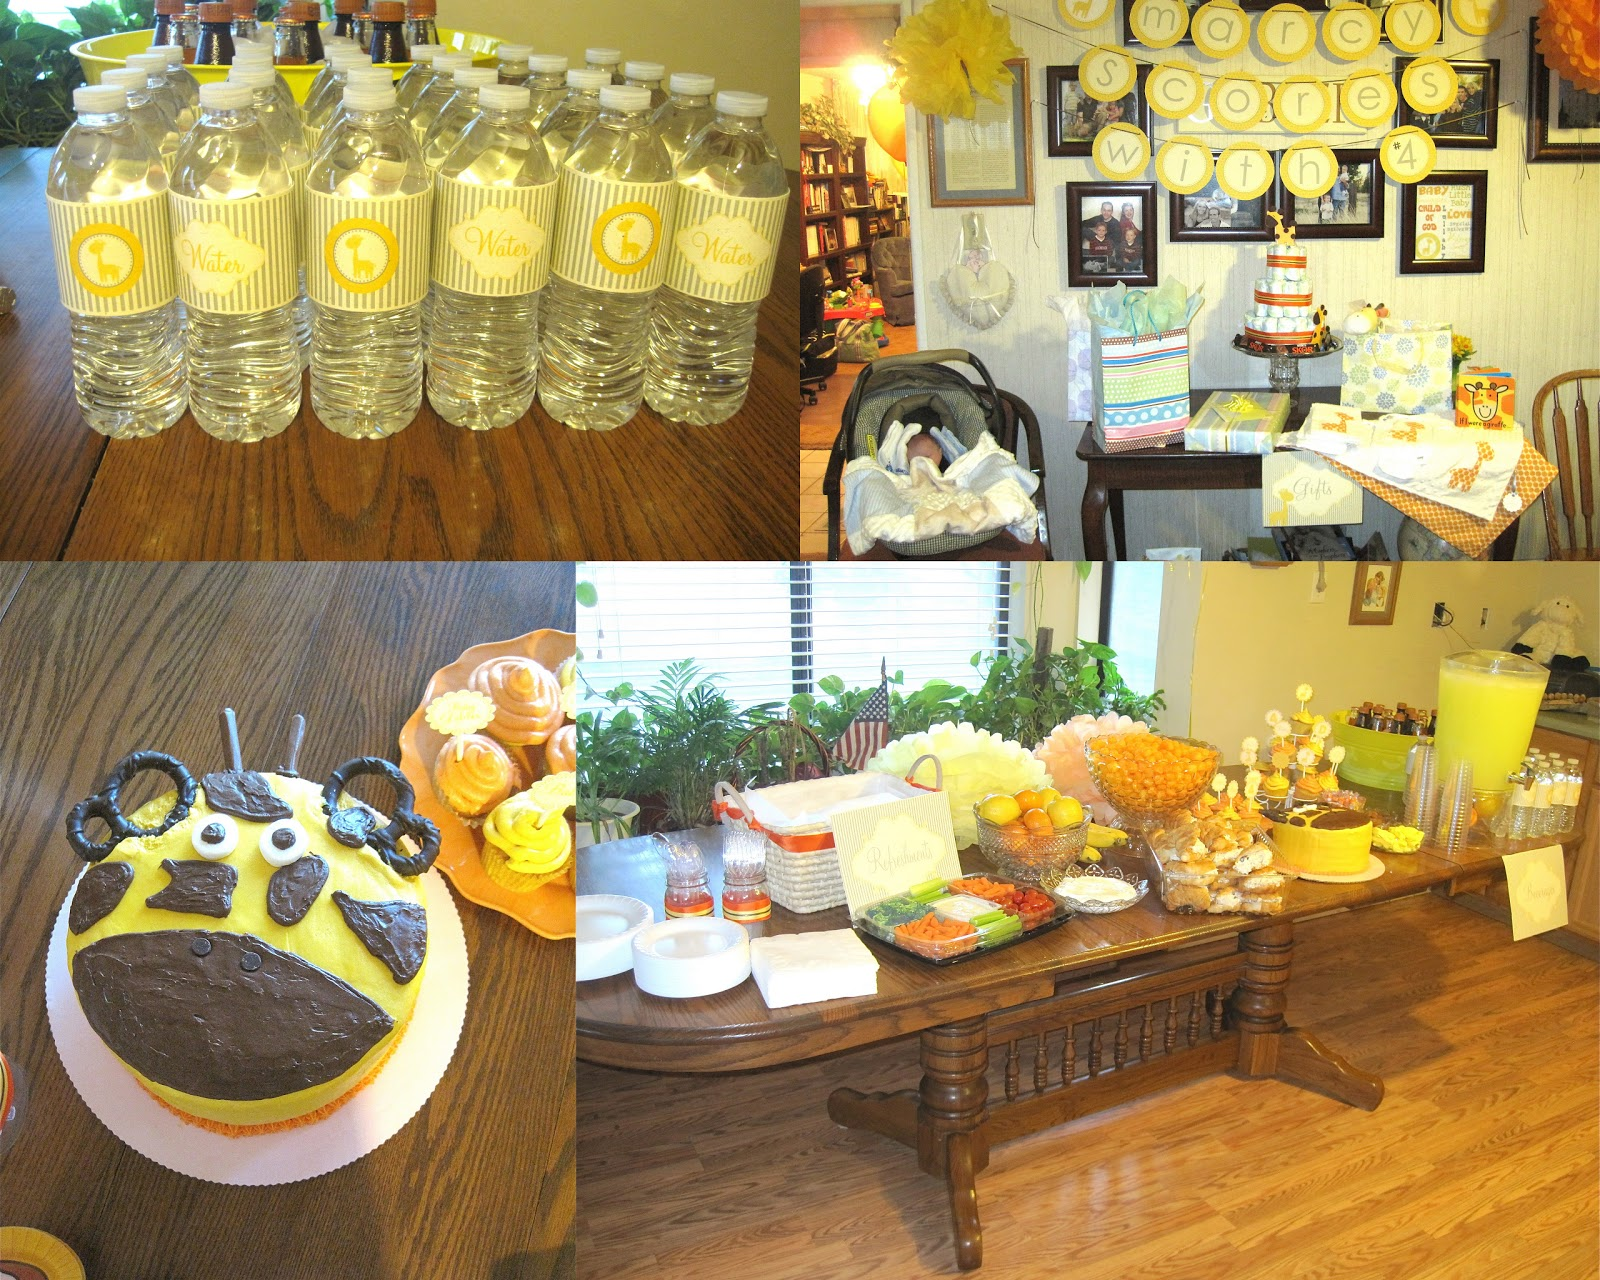 Baby Shower Giraffe Images ~ Google image result for http bp spot dw sdoqwxuy tc o fpedvi aaaaaaaaf s